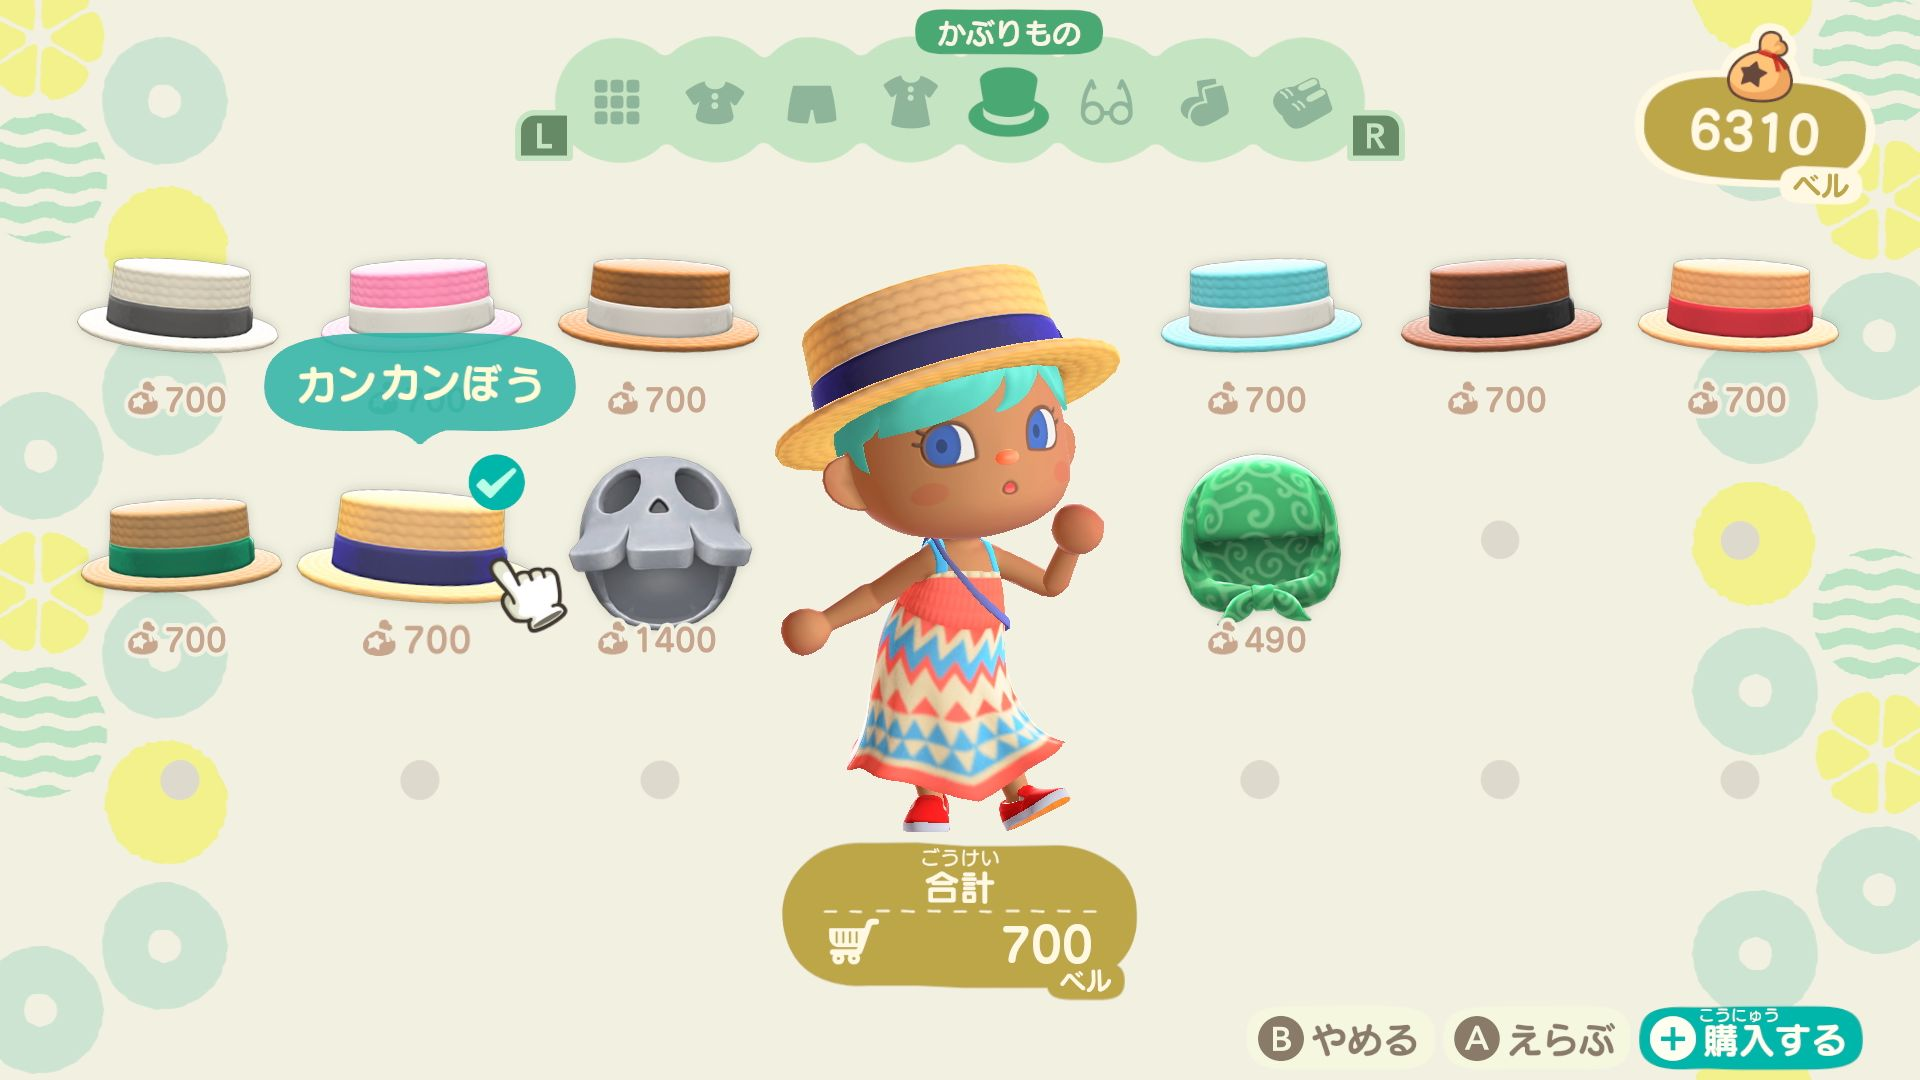 Animal Crossing New Horizons Official Companion Guide Gdc Talk Commercial Screenshots Perfectly Nintendo